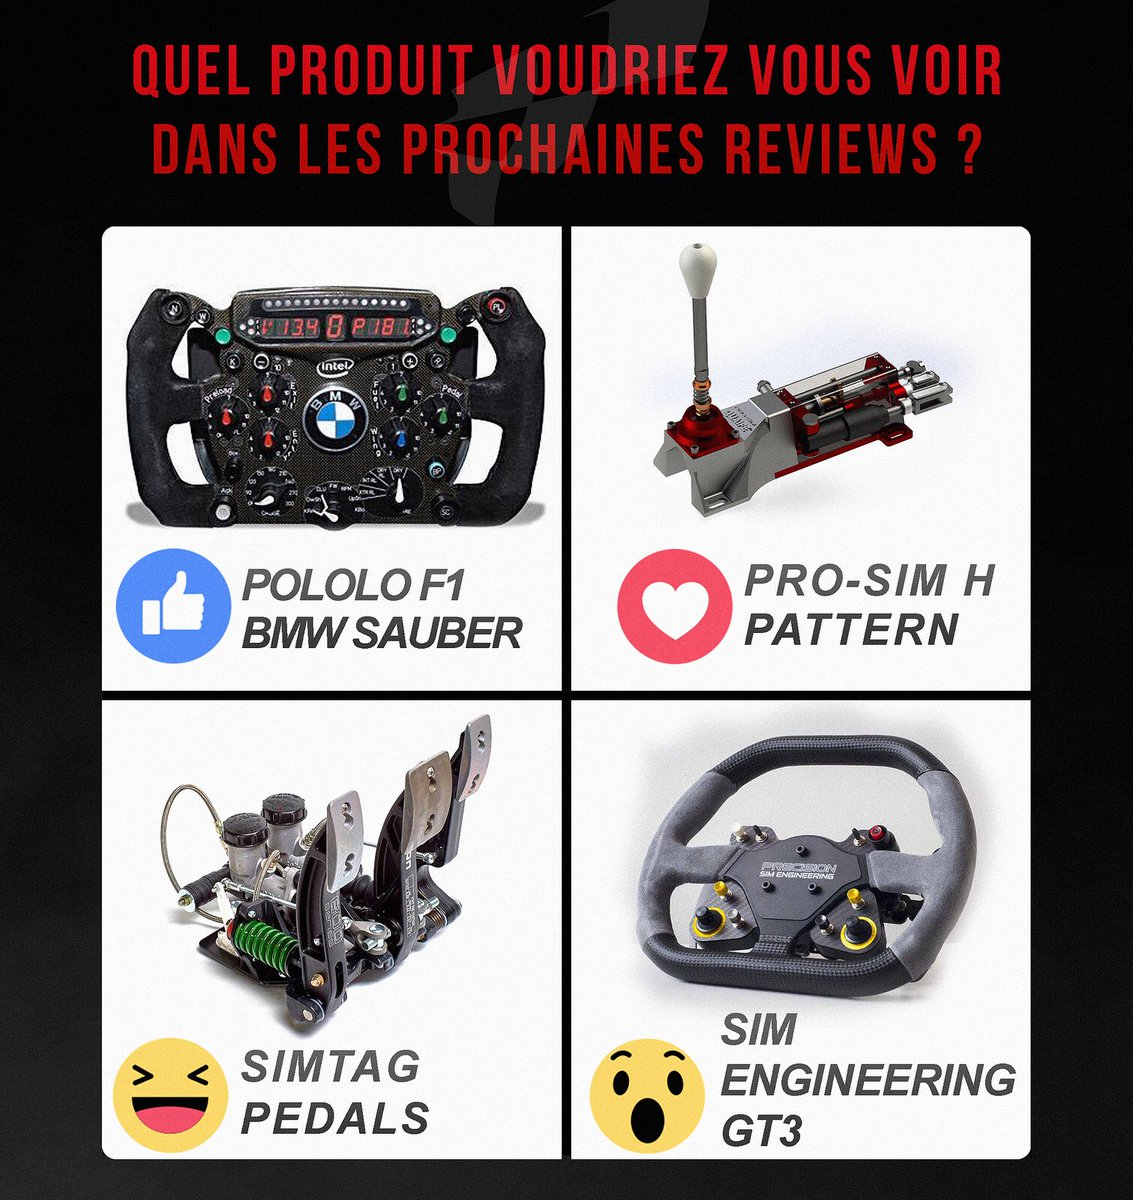 FLOEB Simracing on Twitter: